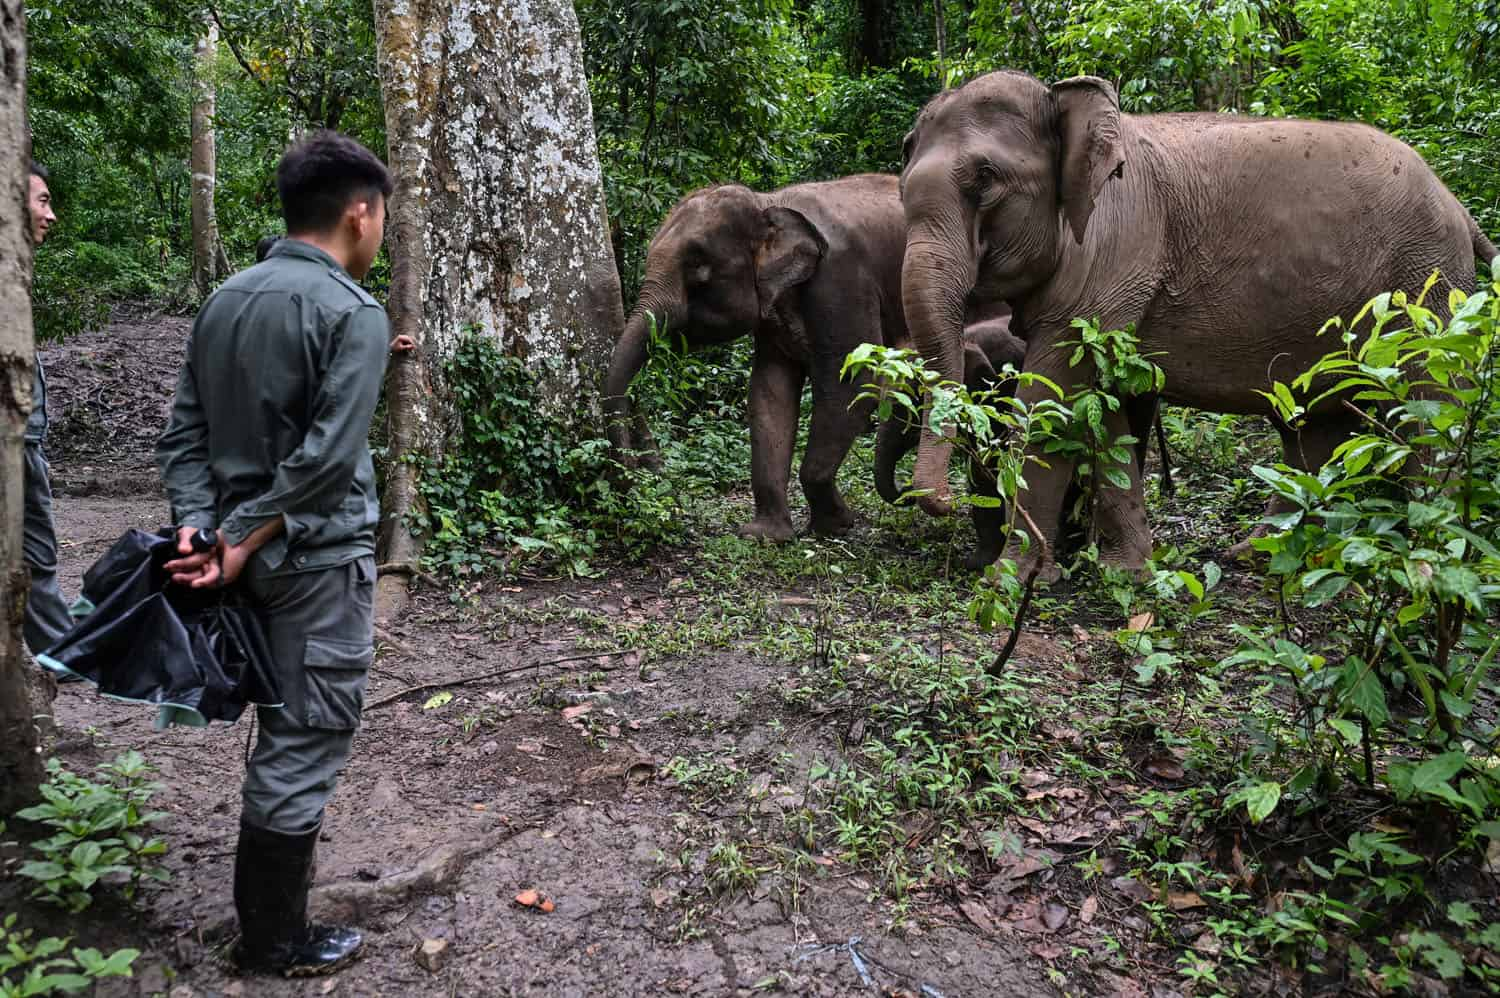 This photo taken on July 20, 2021 shows a conservation worker (R) standing near elephants as they walk in a forest in the Asian Elephant Breeding and Rescue Centre in Xishuangbanna in southwest China's Yunnan province. - An elephant in the street is now a common sight for residents of the animals' home territory on the Myanmar-Laos border, where a recovering elephant population is being squeezed into ever-shrinking habitat, leading to growing human-elephant conflict. (Photo by Hector RETAMAL / AFP) / TO GO WITH AFP STORY China-animal-nature-conservation by Dan Martin